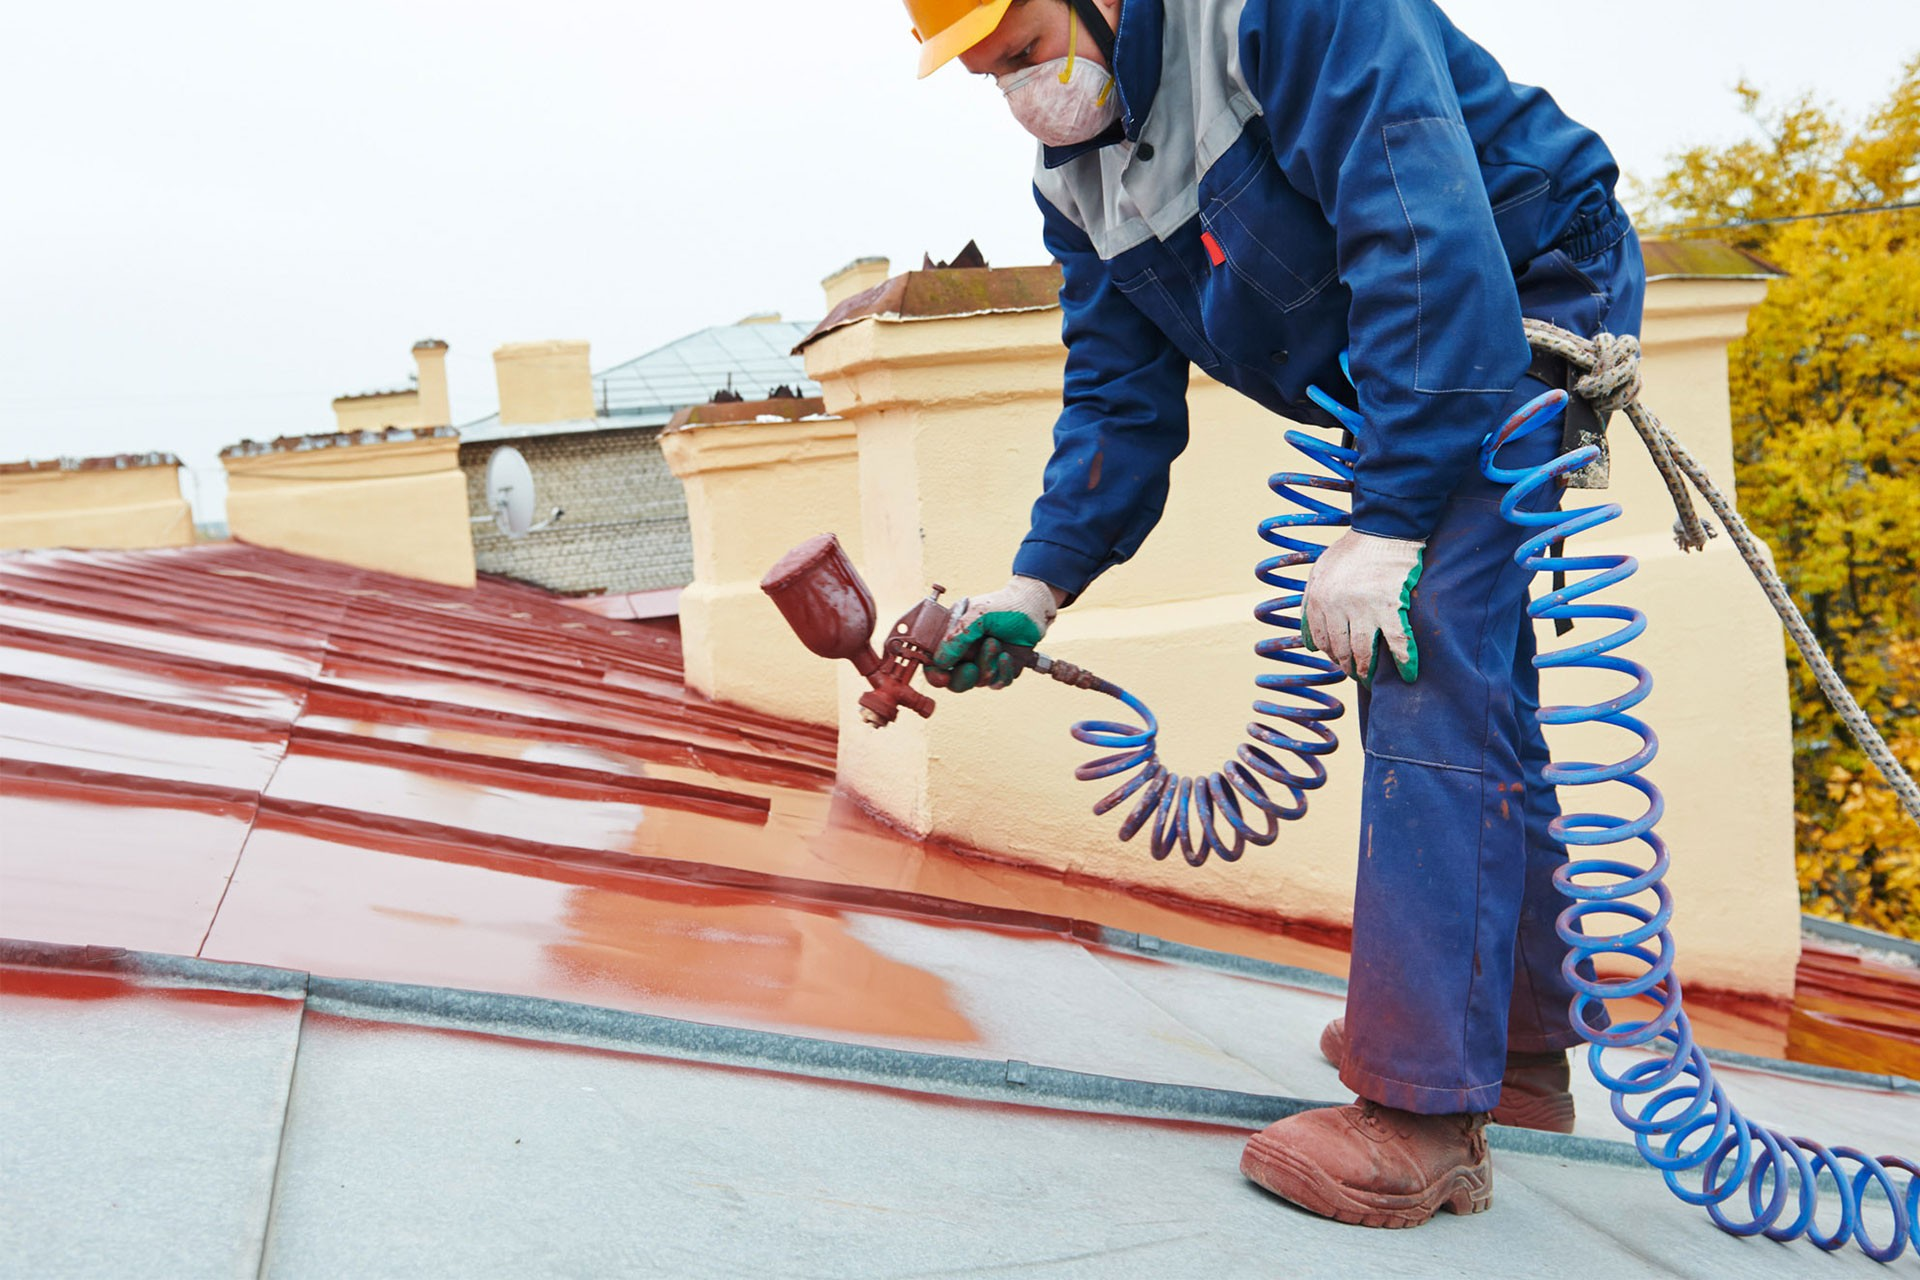 Bloomington-Victoria TX Professional Painting Contractors-We offer Residential & Commercial Painting, Interior Painting, Exterior Painting, Primer Painting, Industrial Painting, Professional Painters, Institutional Painters, and more.